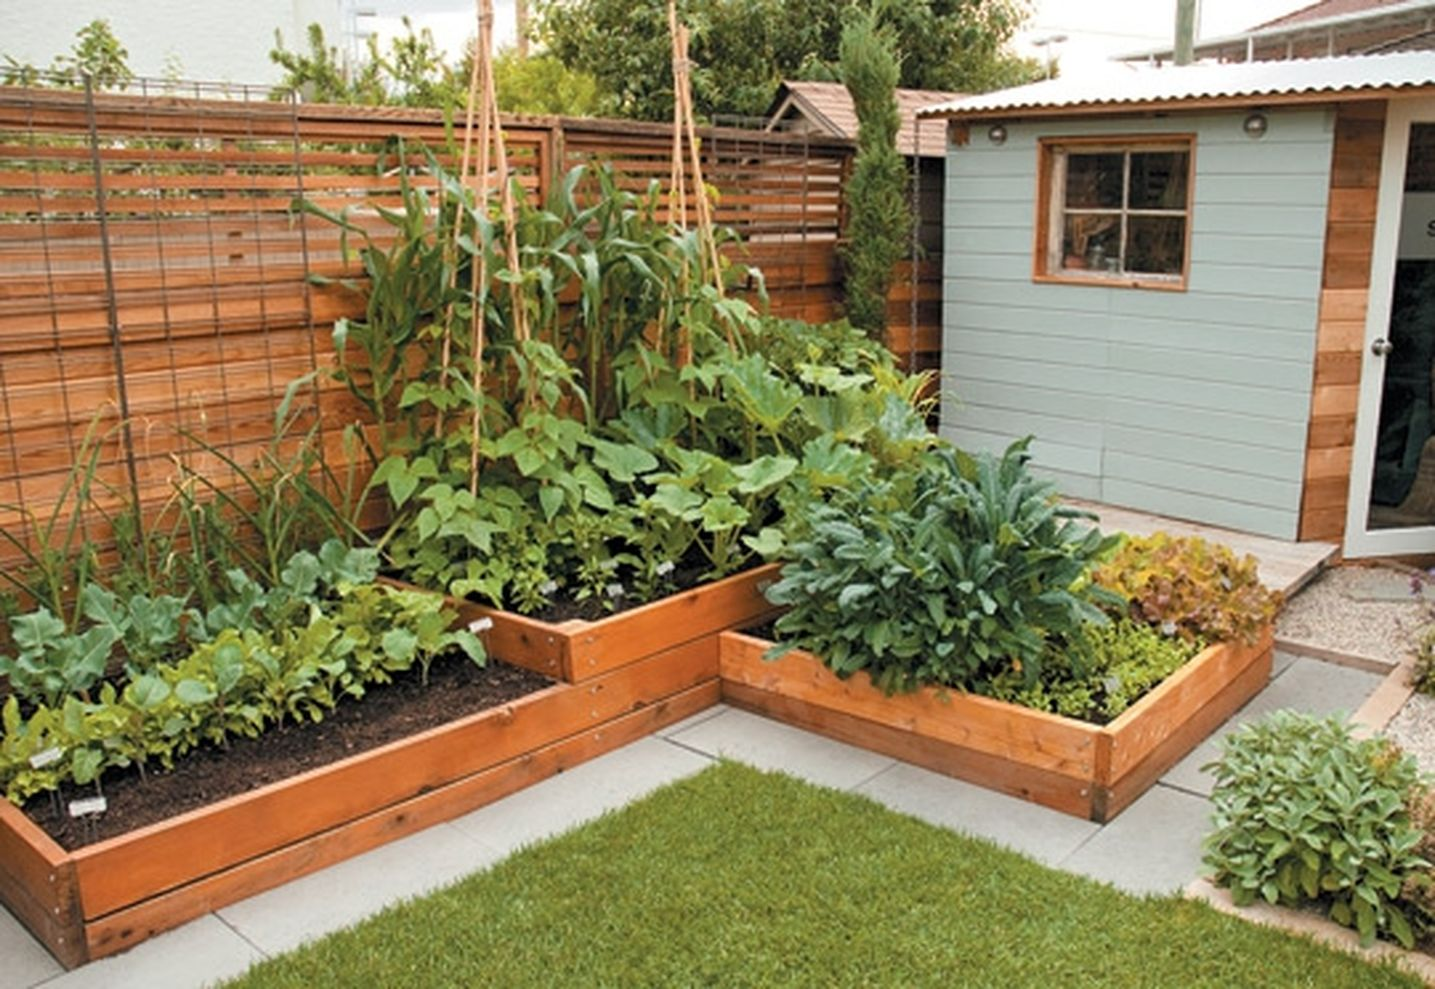 Backyard Vegetable Garden Design ... 1435 × 989 in 62 Affordable Backyard Vegetable Garden Designs Ideas